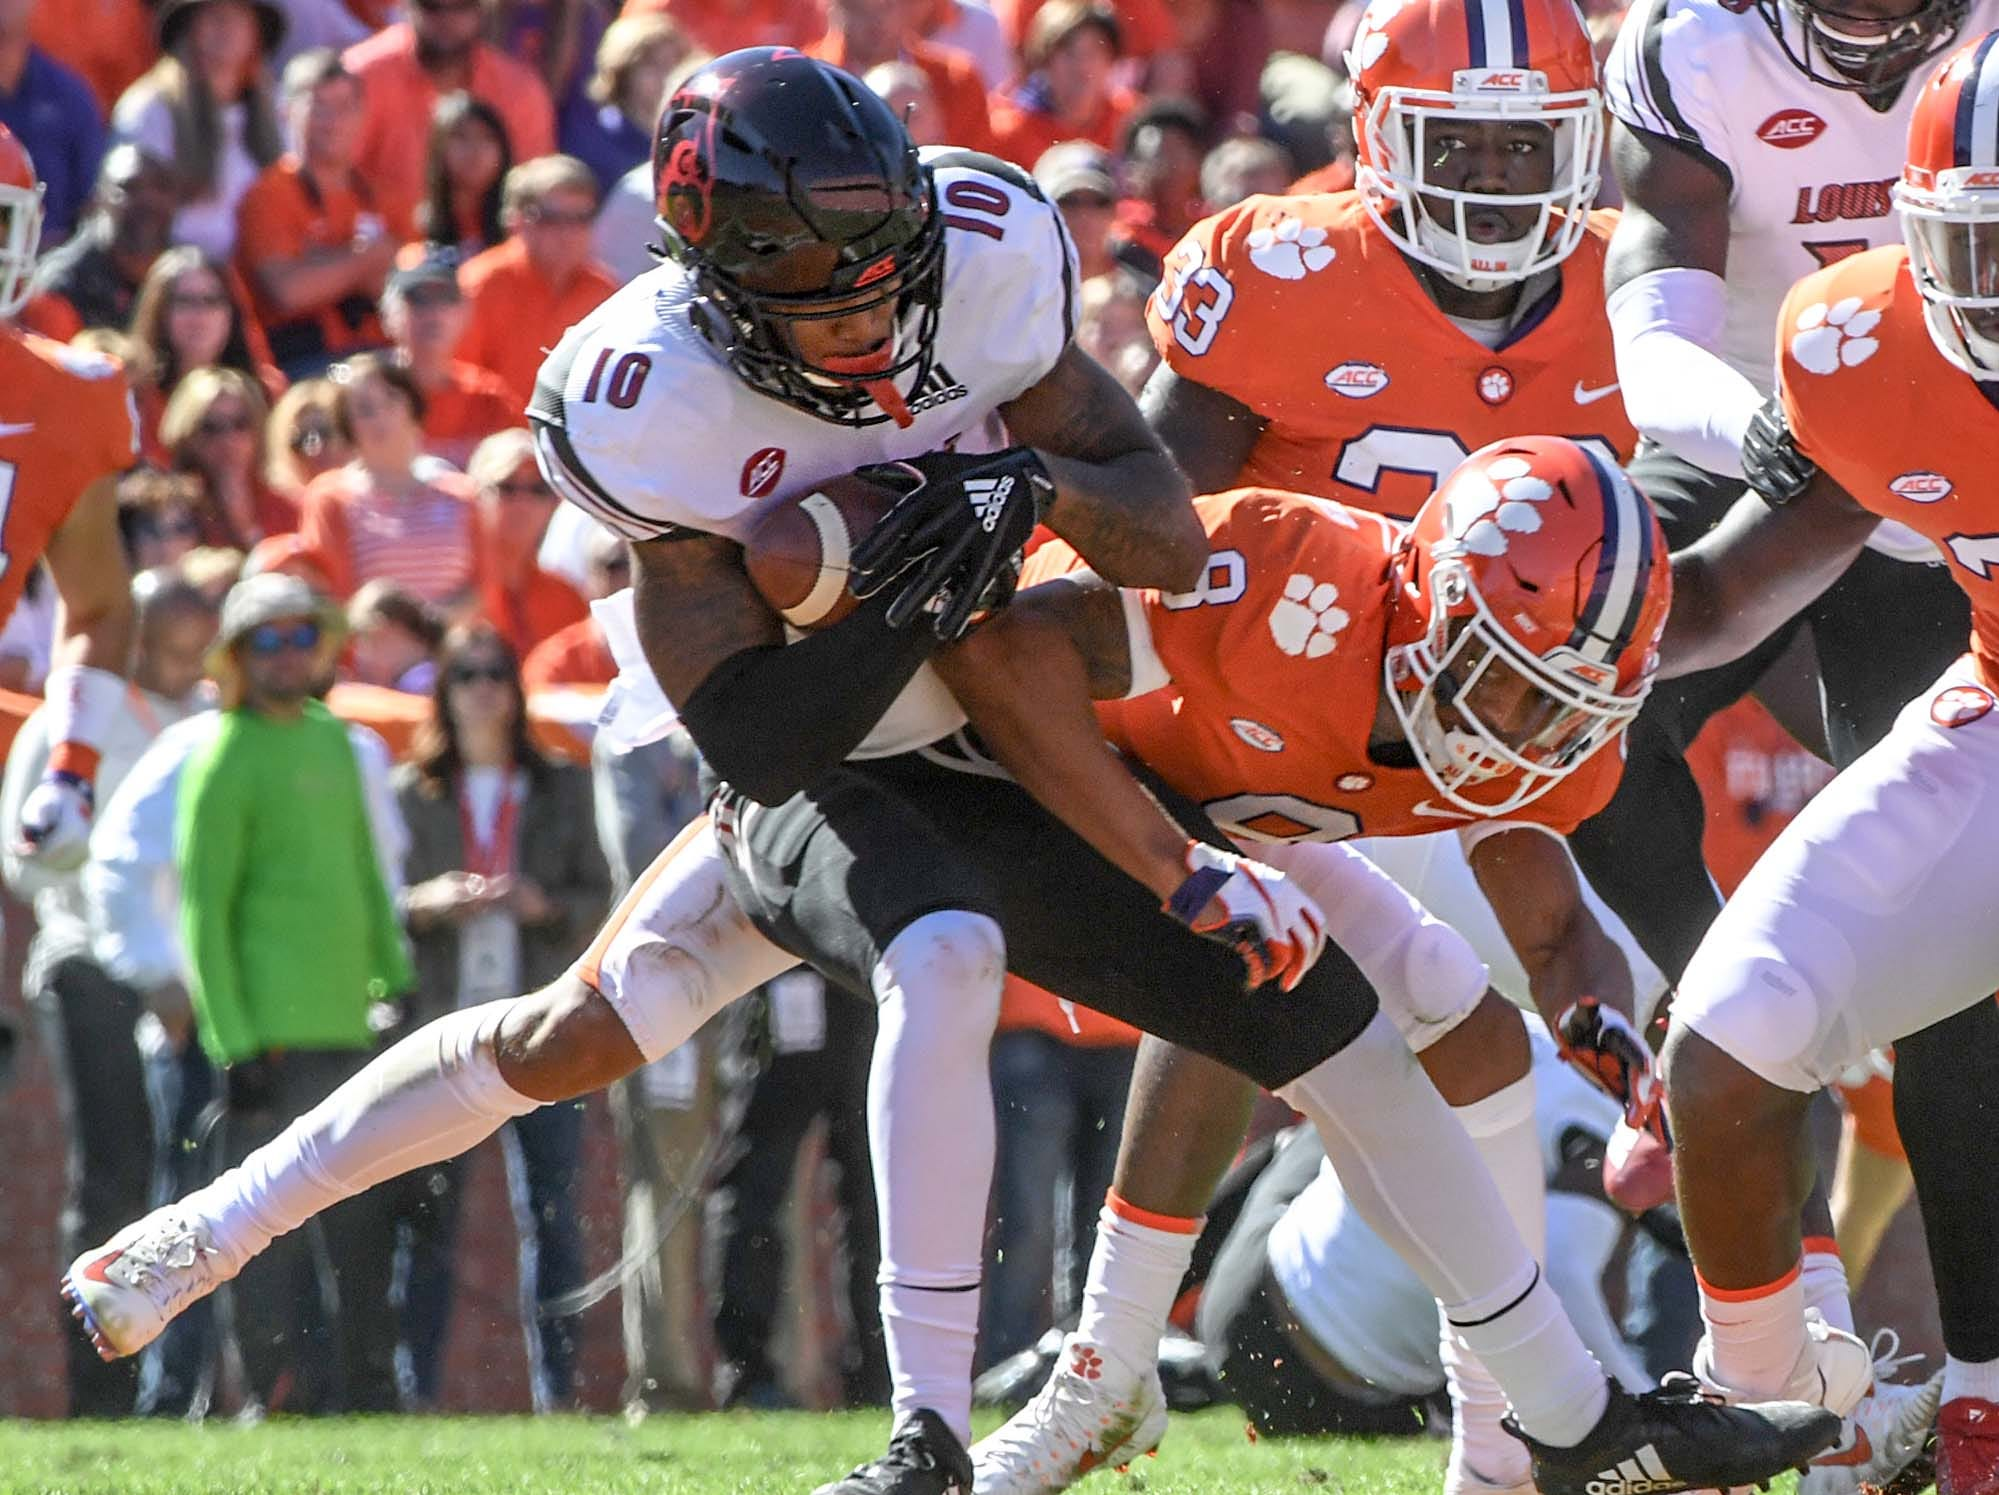 Clemson defensive back A.J. Terrell (8) tackles Louisville running back Javian Hawkins(10) on a punt return play during the second quarter in Memorial Stadium on Saturday, November 3, 2018. Terrell was ejected from the game for targeting.